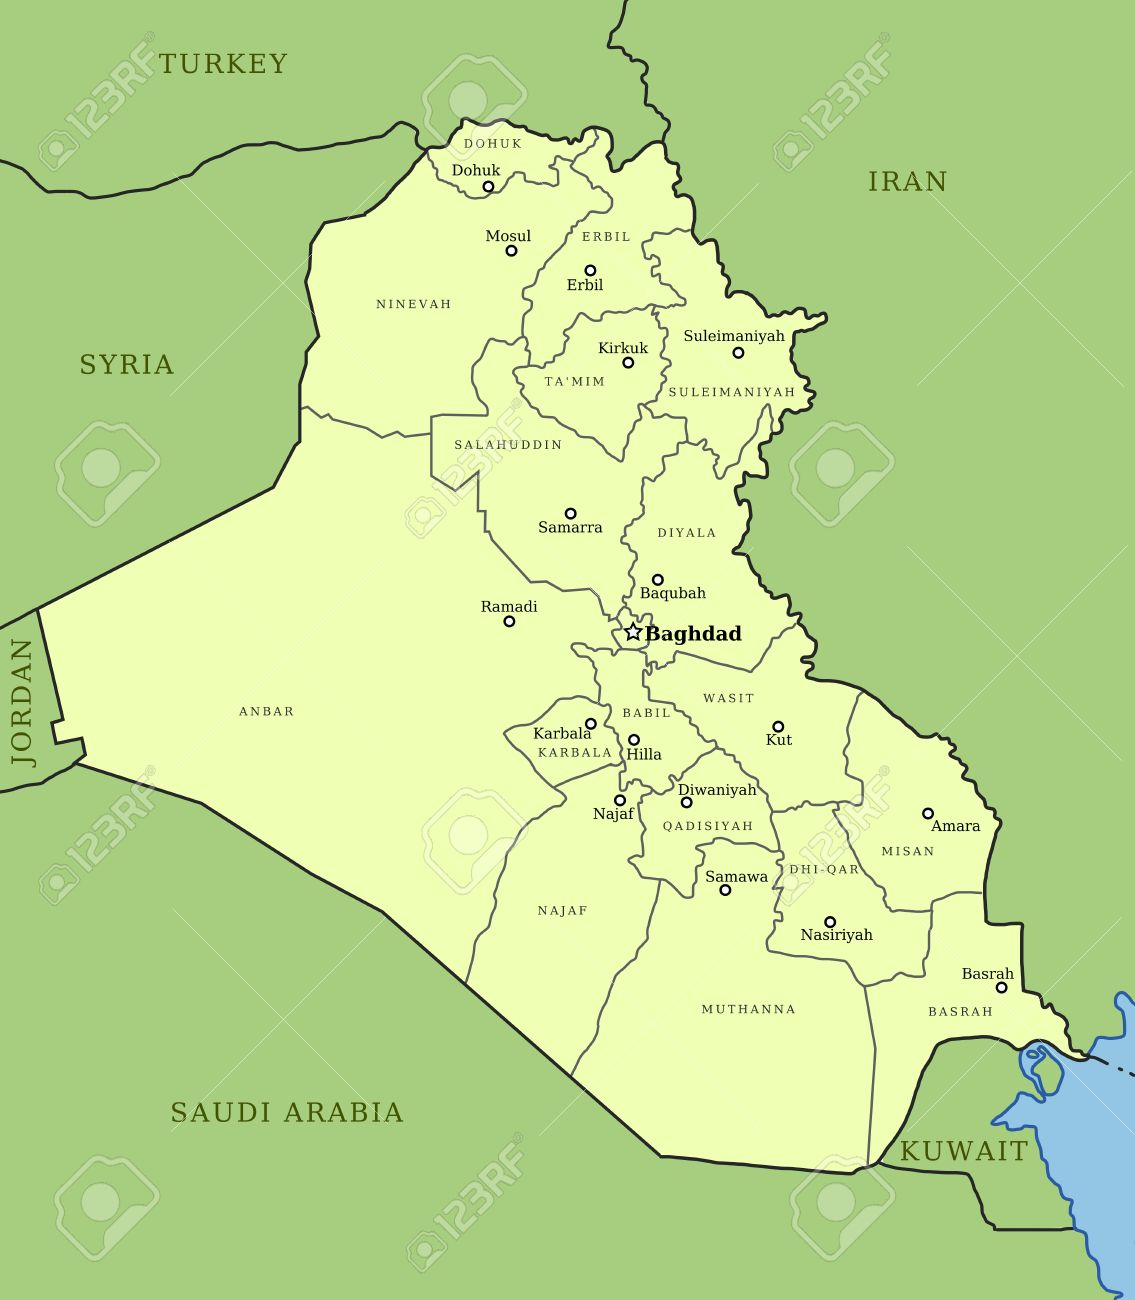 Map Of Iraq With Provinces governorates And Major Cities Baghdad